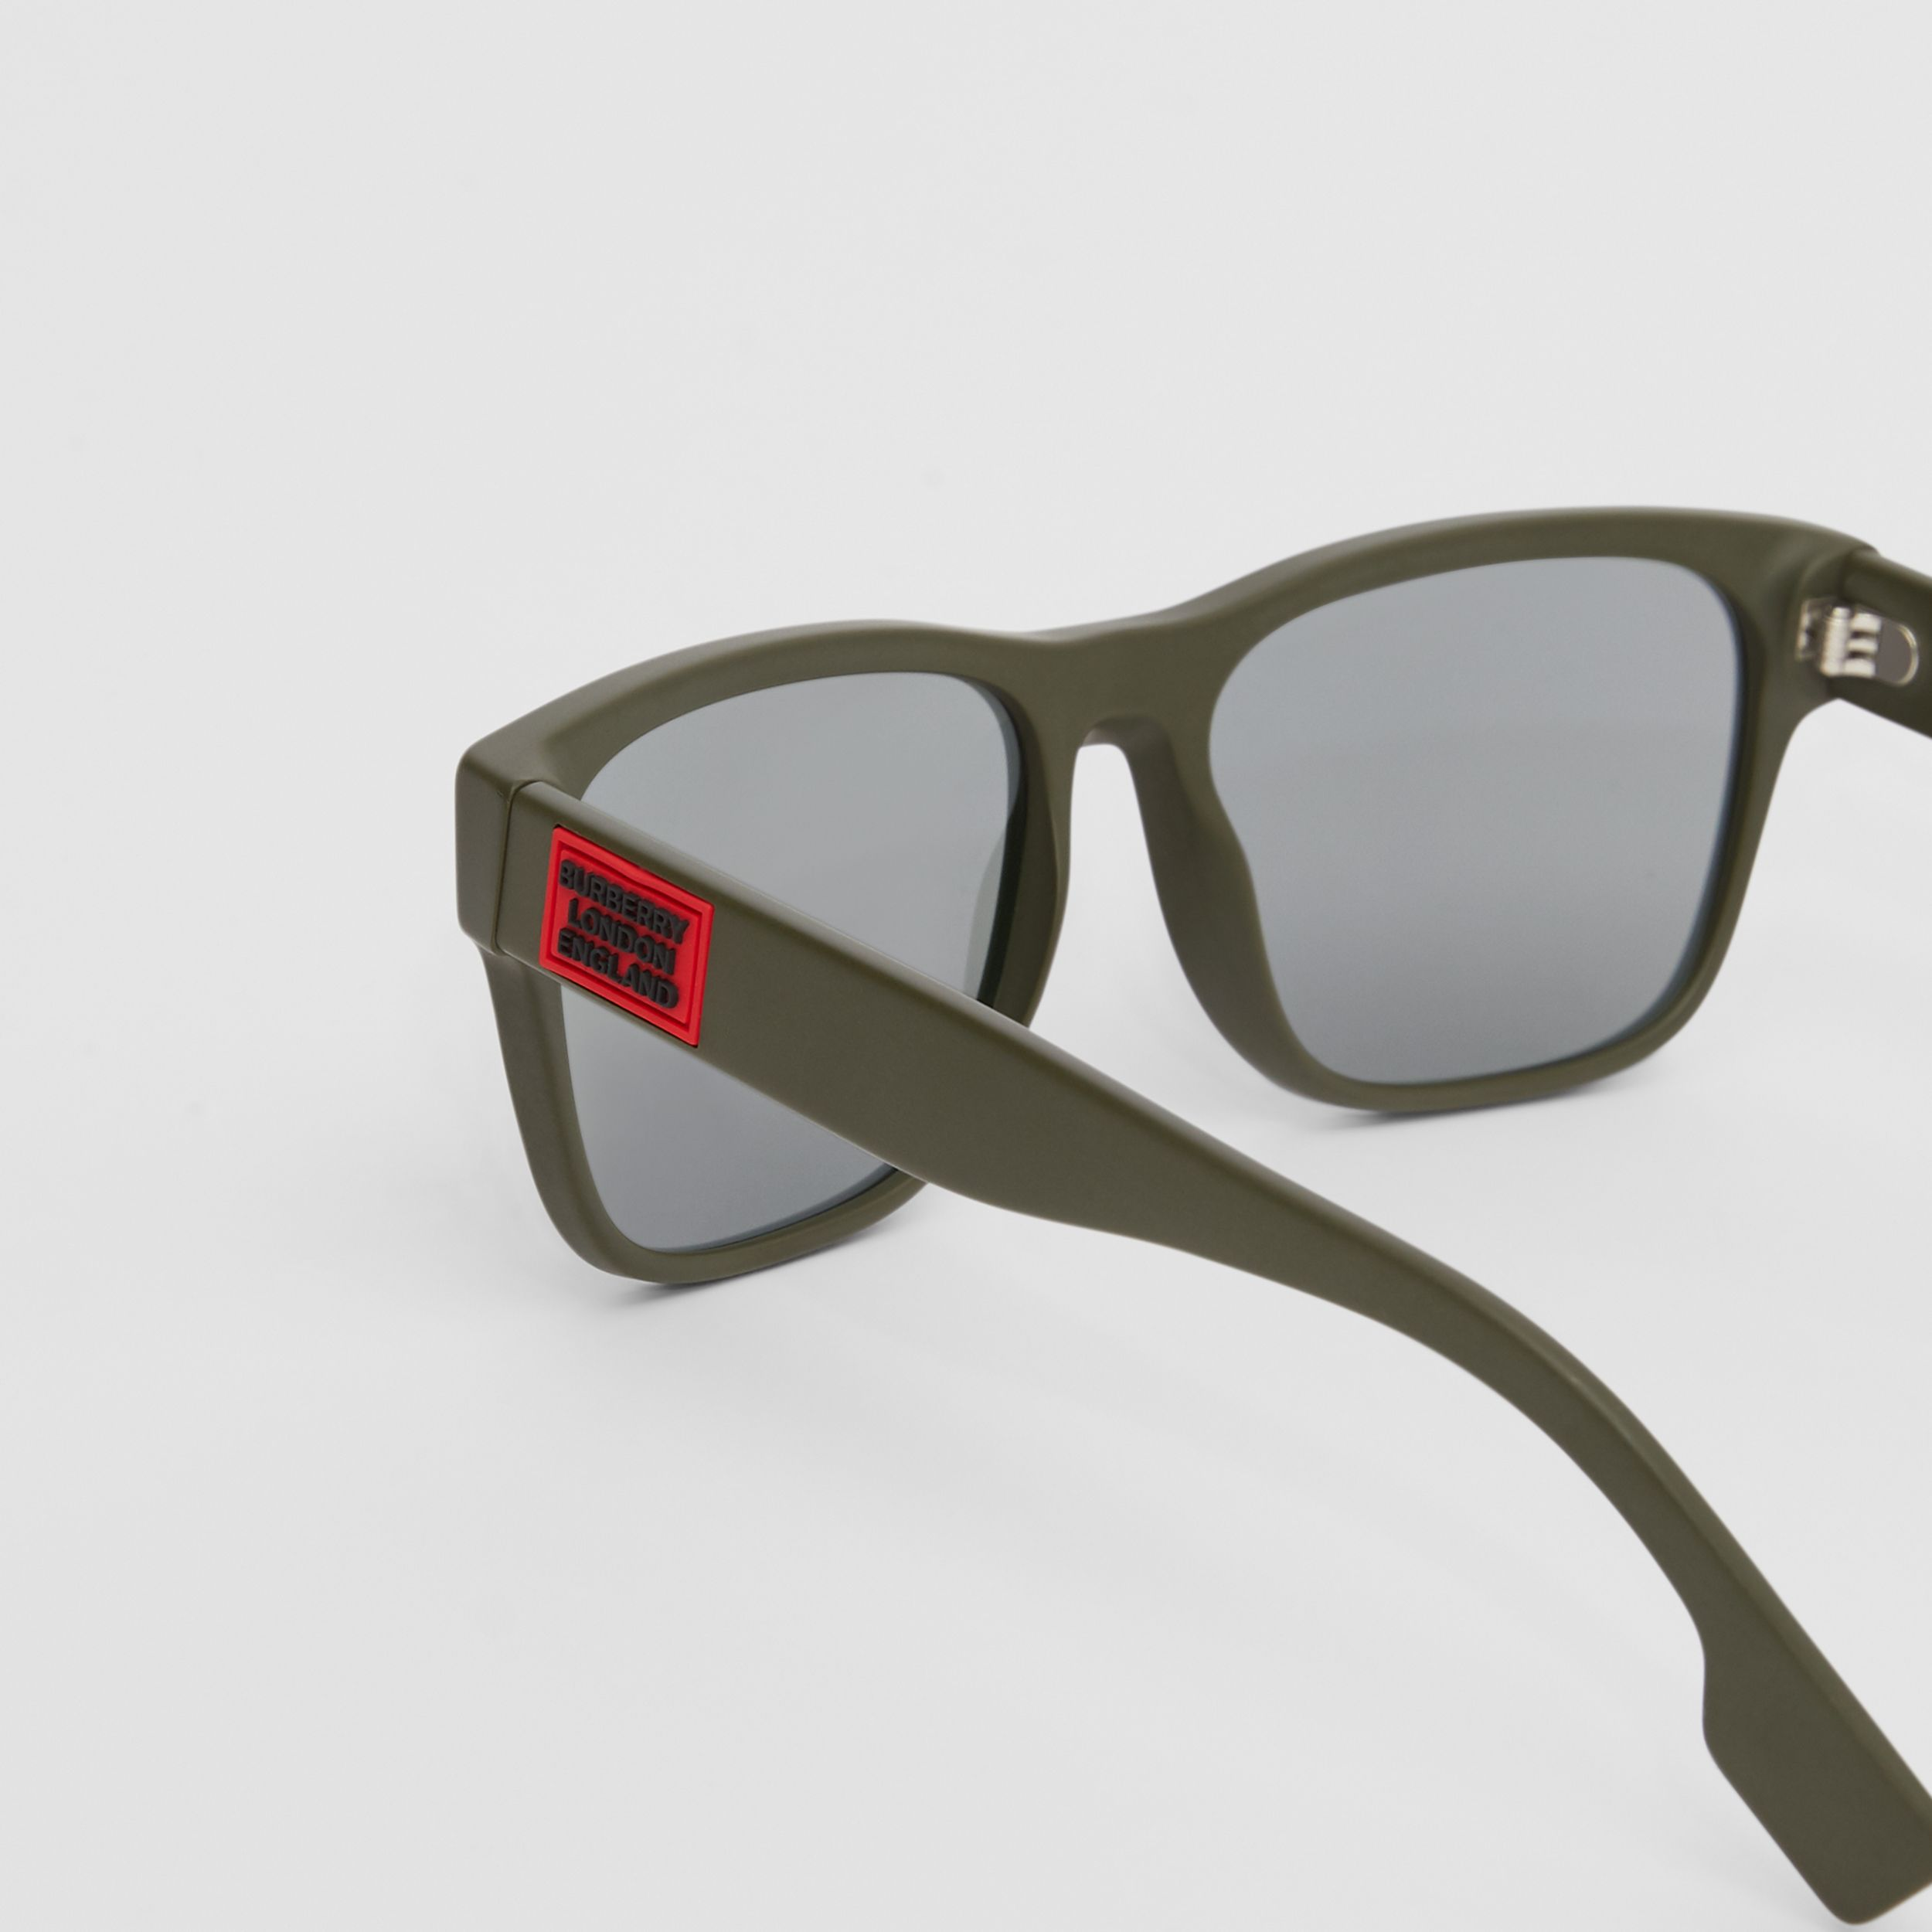 Logo Appliqué Square Frame Sunglasses in Military Green - Men | Burberry - 2